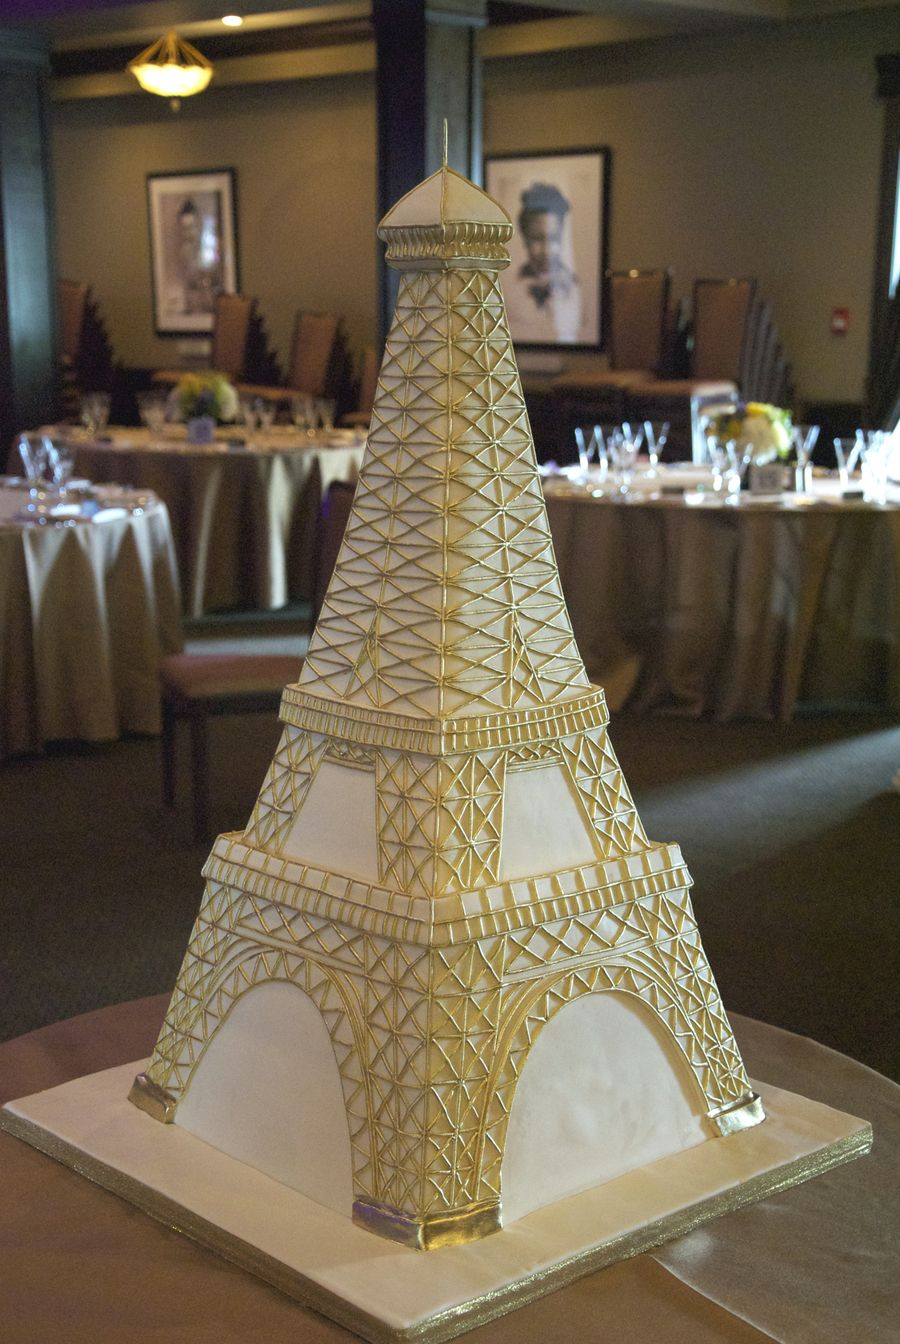 Eiffel Tower Wedding Cake An ivory and gold 3D Eiffel Tower wedding ...